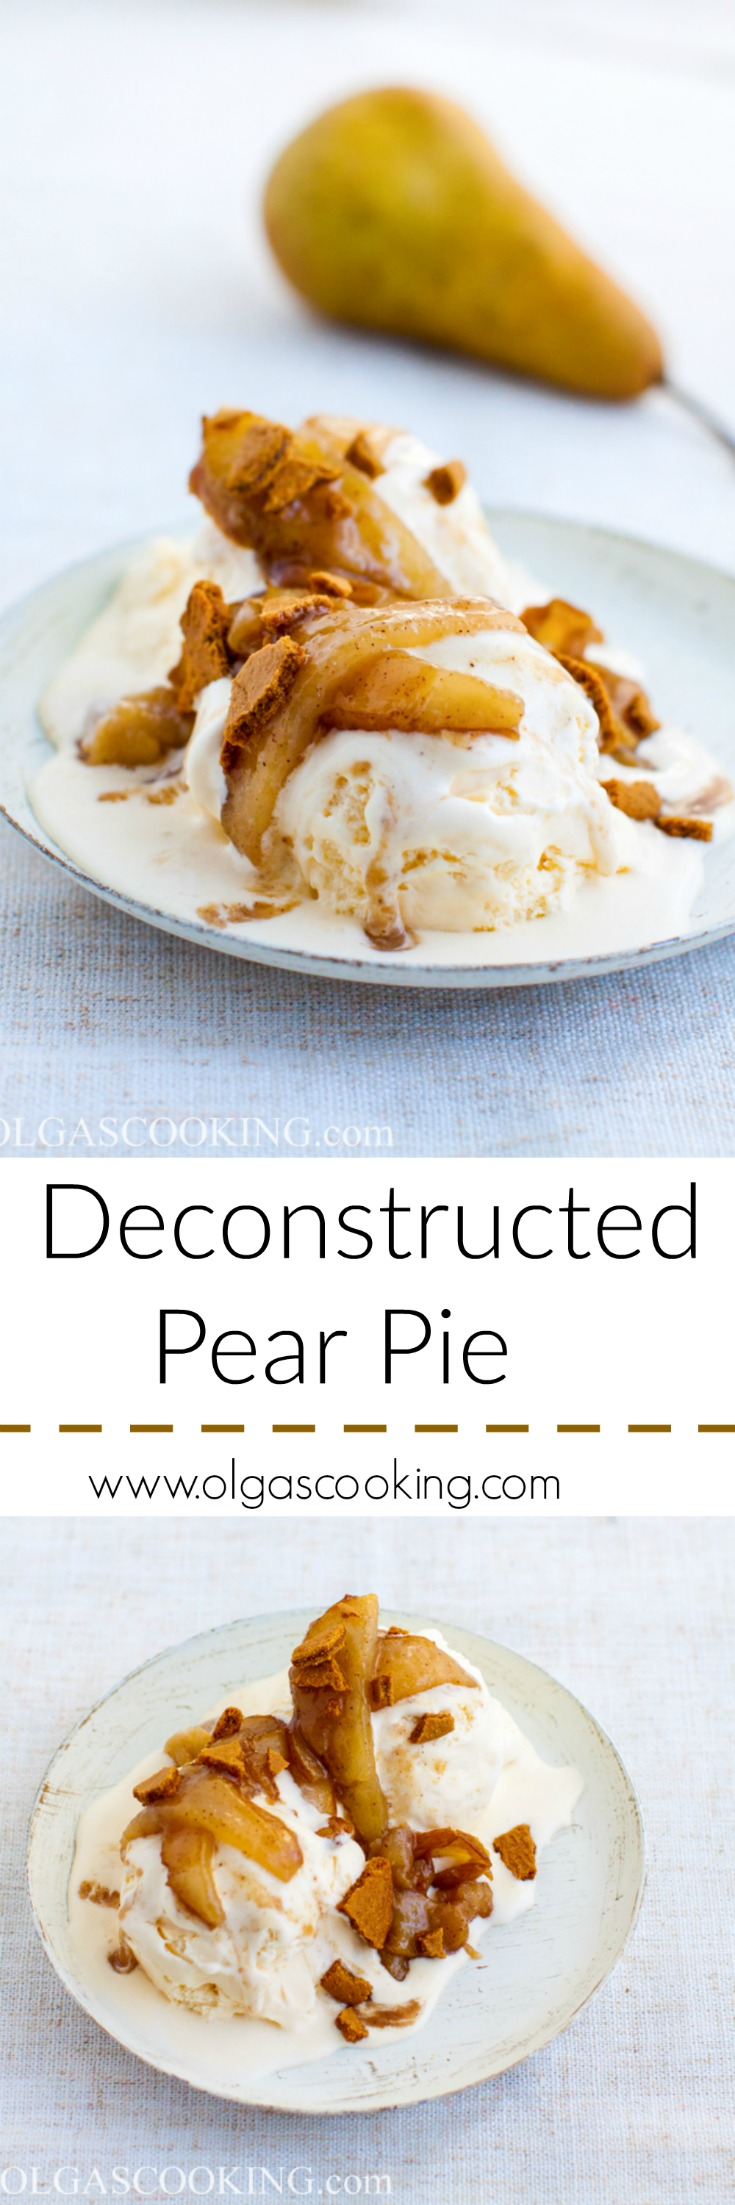 deconstructed-pear-pie-for-when-you-want-a-taste-of-fall-but-want-to-hang-on-to-summer